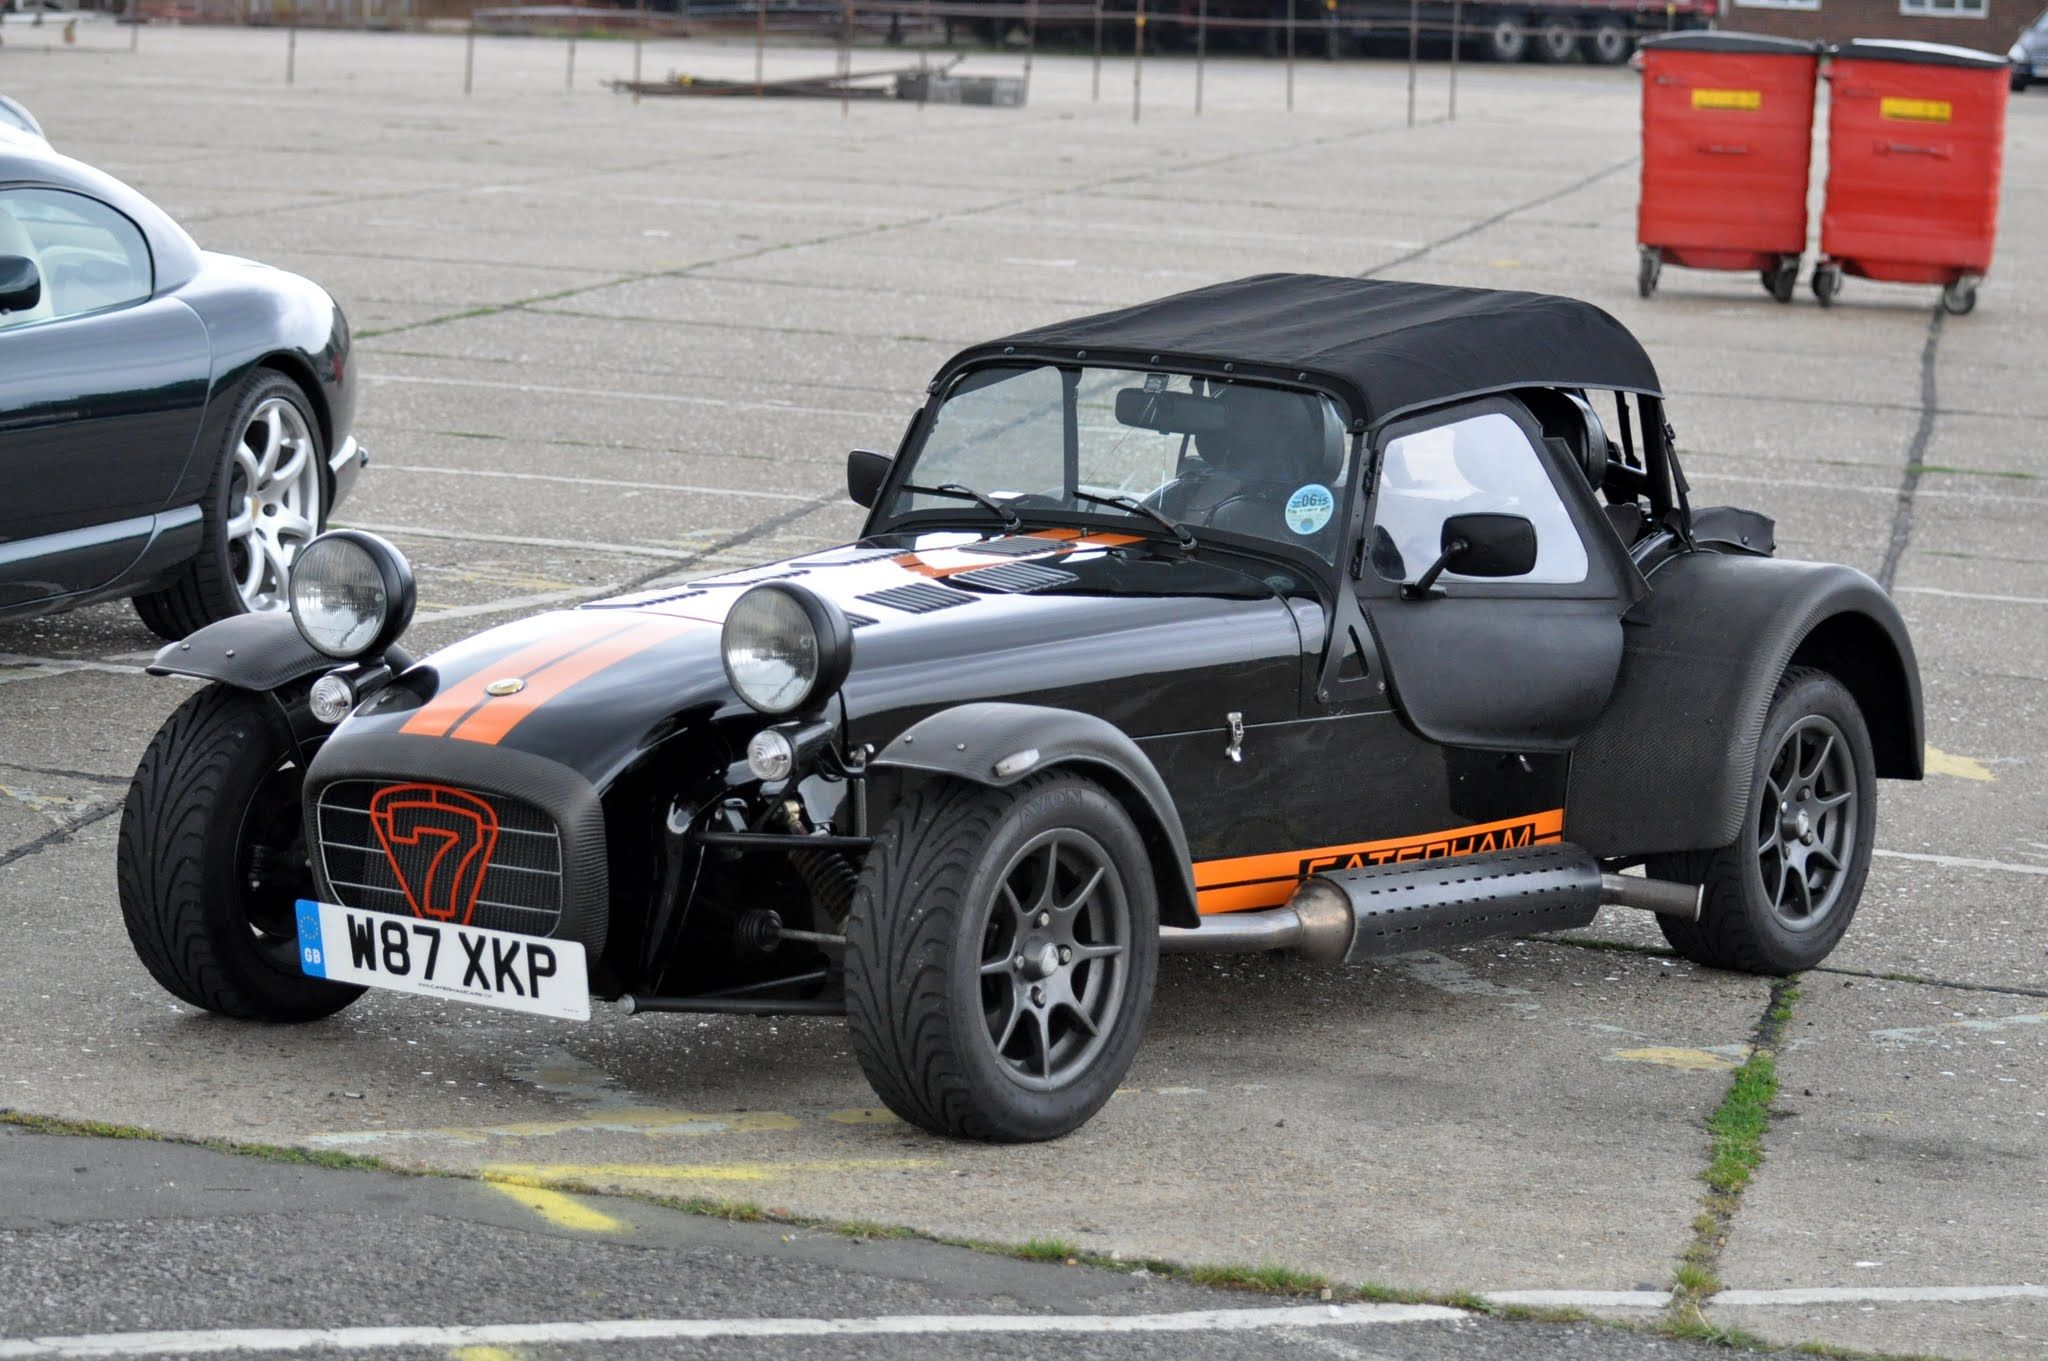 caterham 7 1 6 eu2 superlight 106 caterham lotus 7 pinterest lotus kit cars and cars. Black Bedroom Furniture Sets. Home Design Ideas